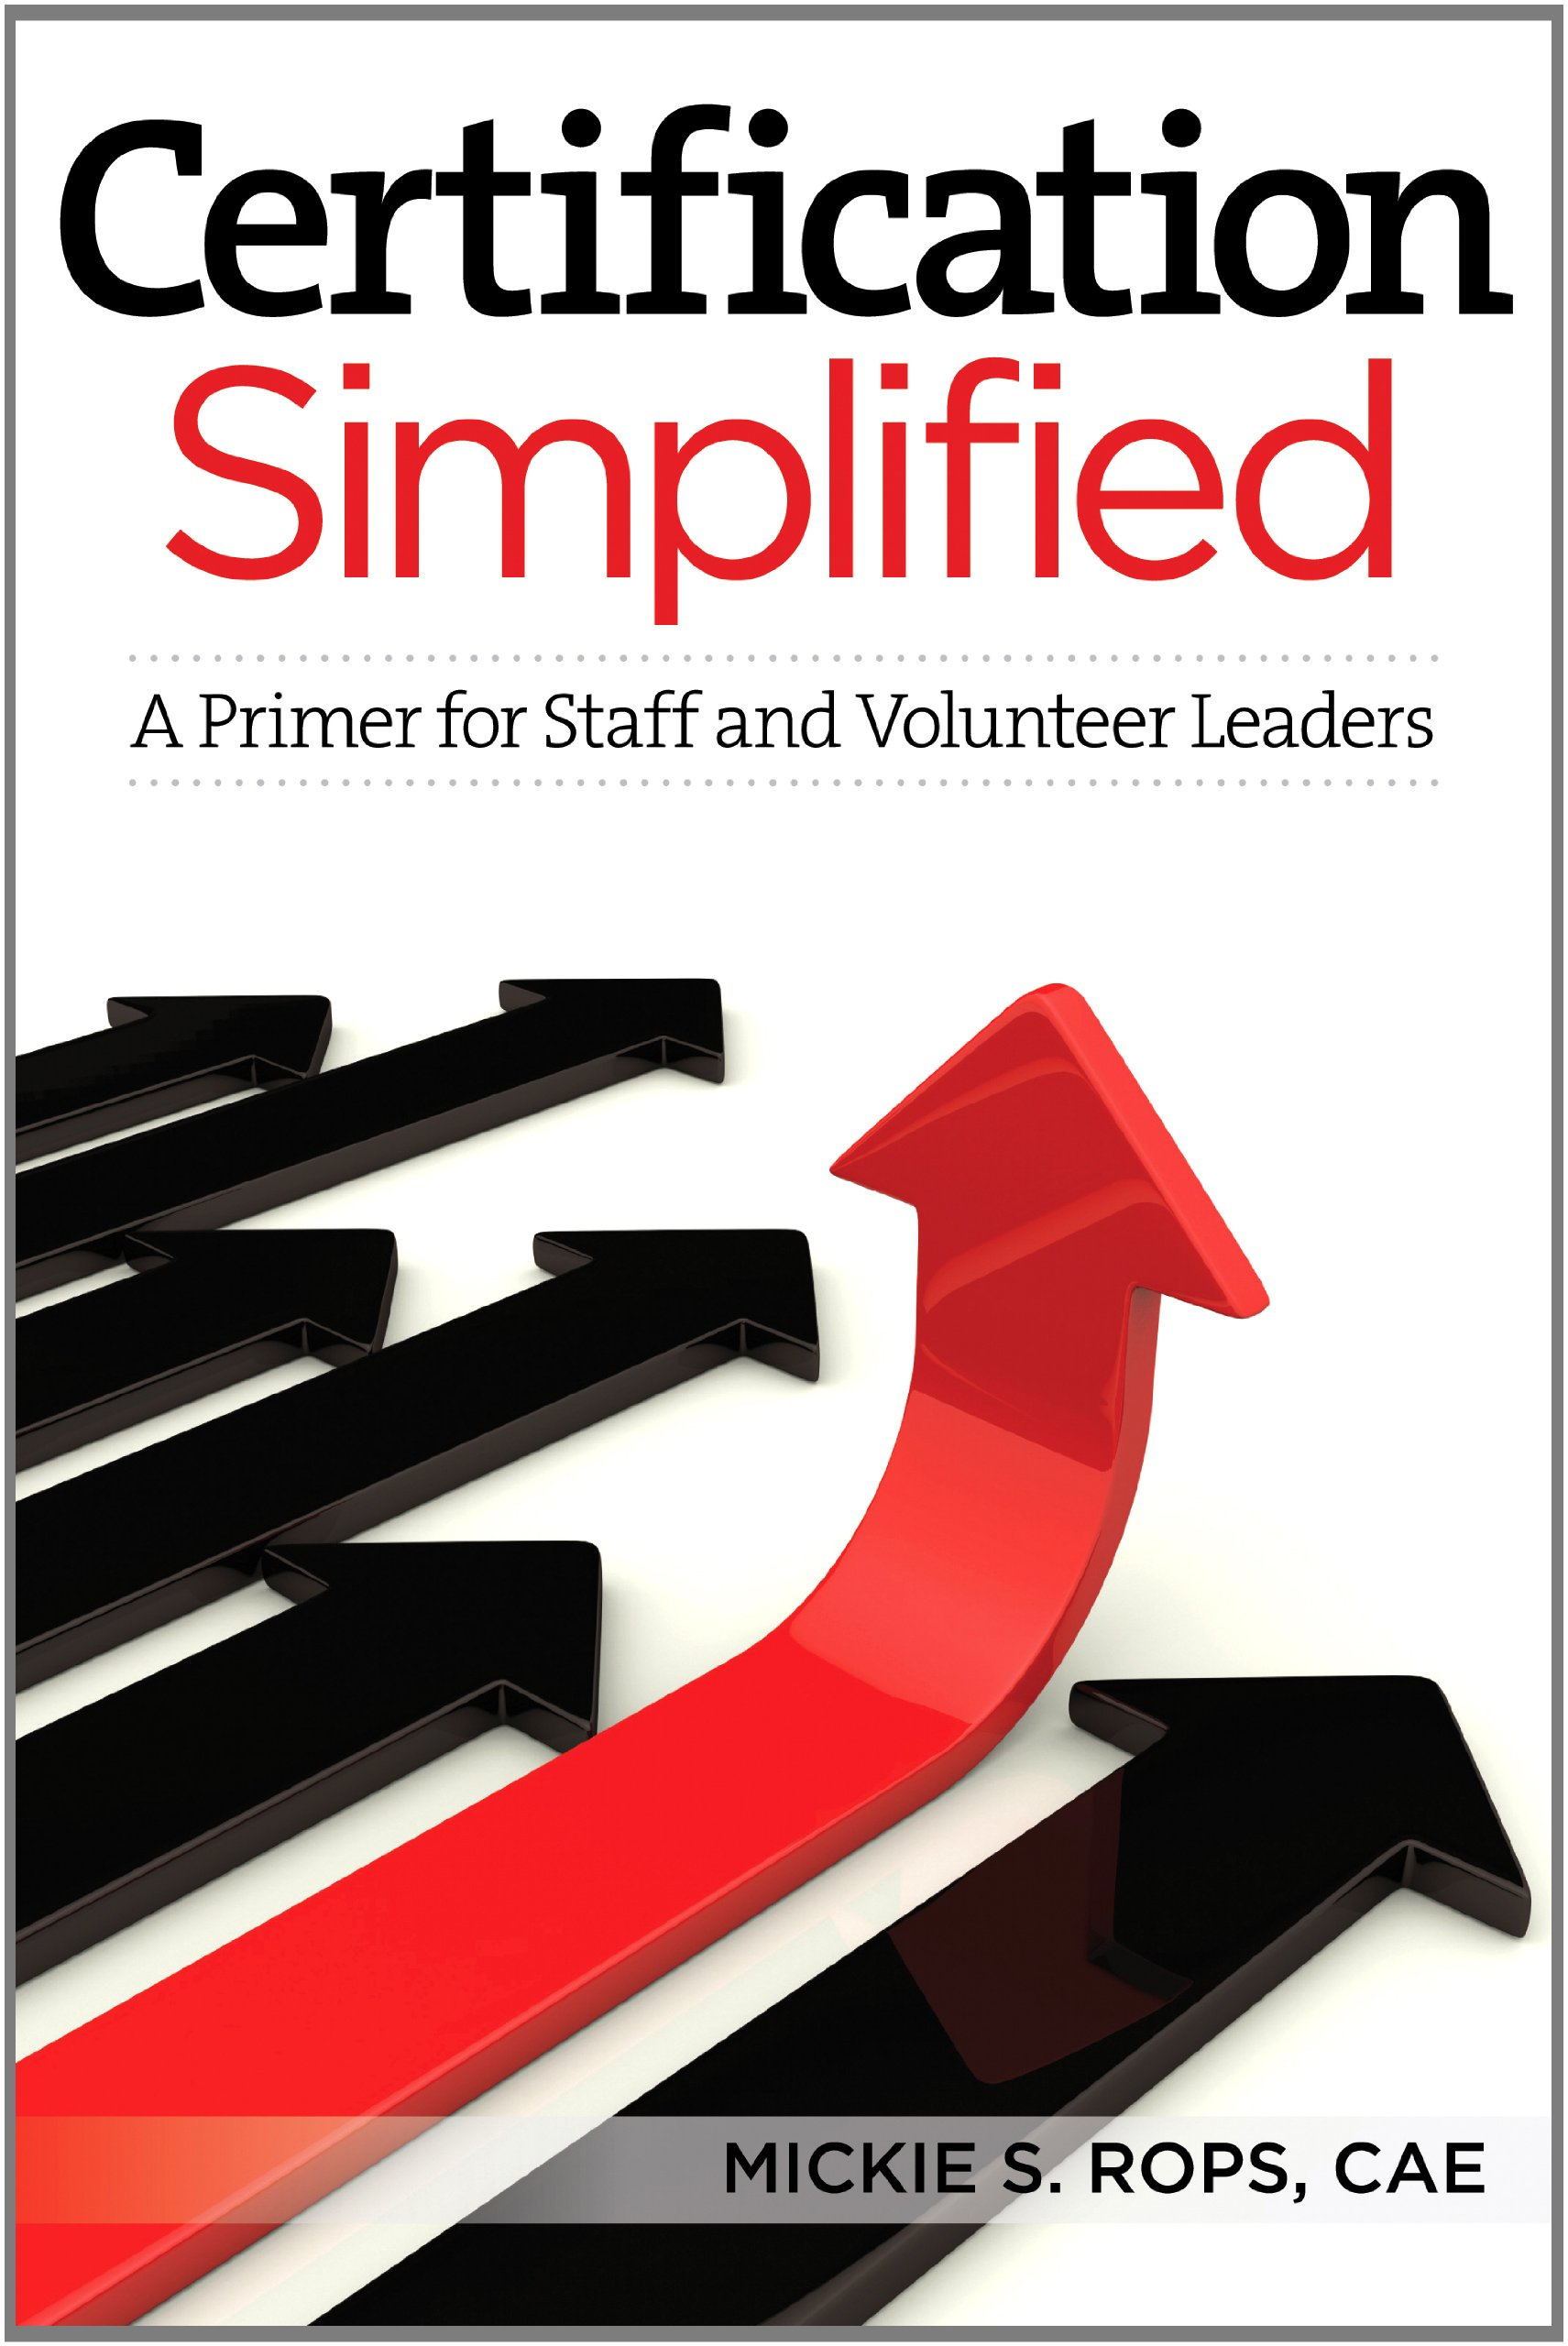 Certification Simplified: A Primer for Staff and Volunteer Leaders pdf